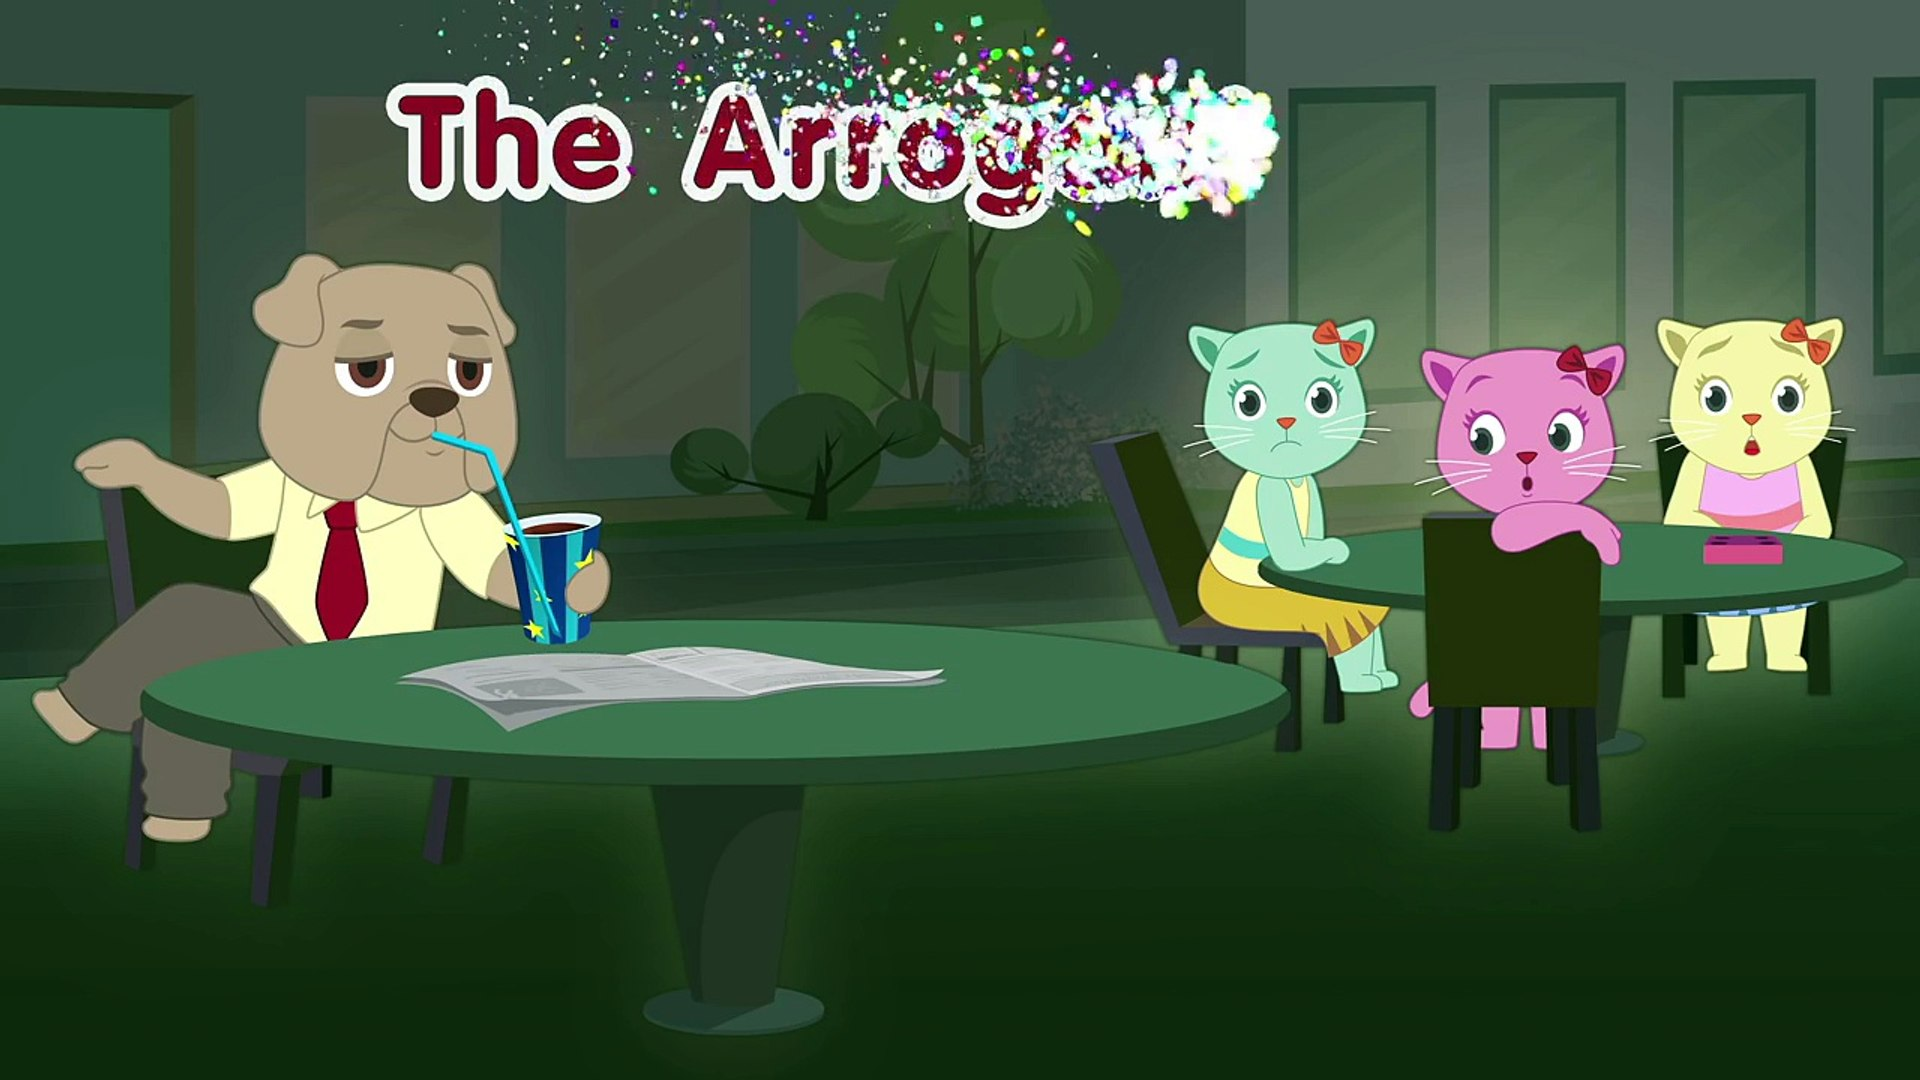 The Arrogant Dog - Cutians Funny Cartoon Comedy Show For Kids-Rhyme for Kids